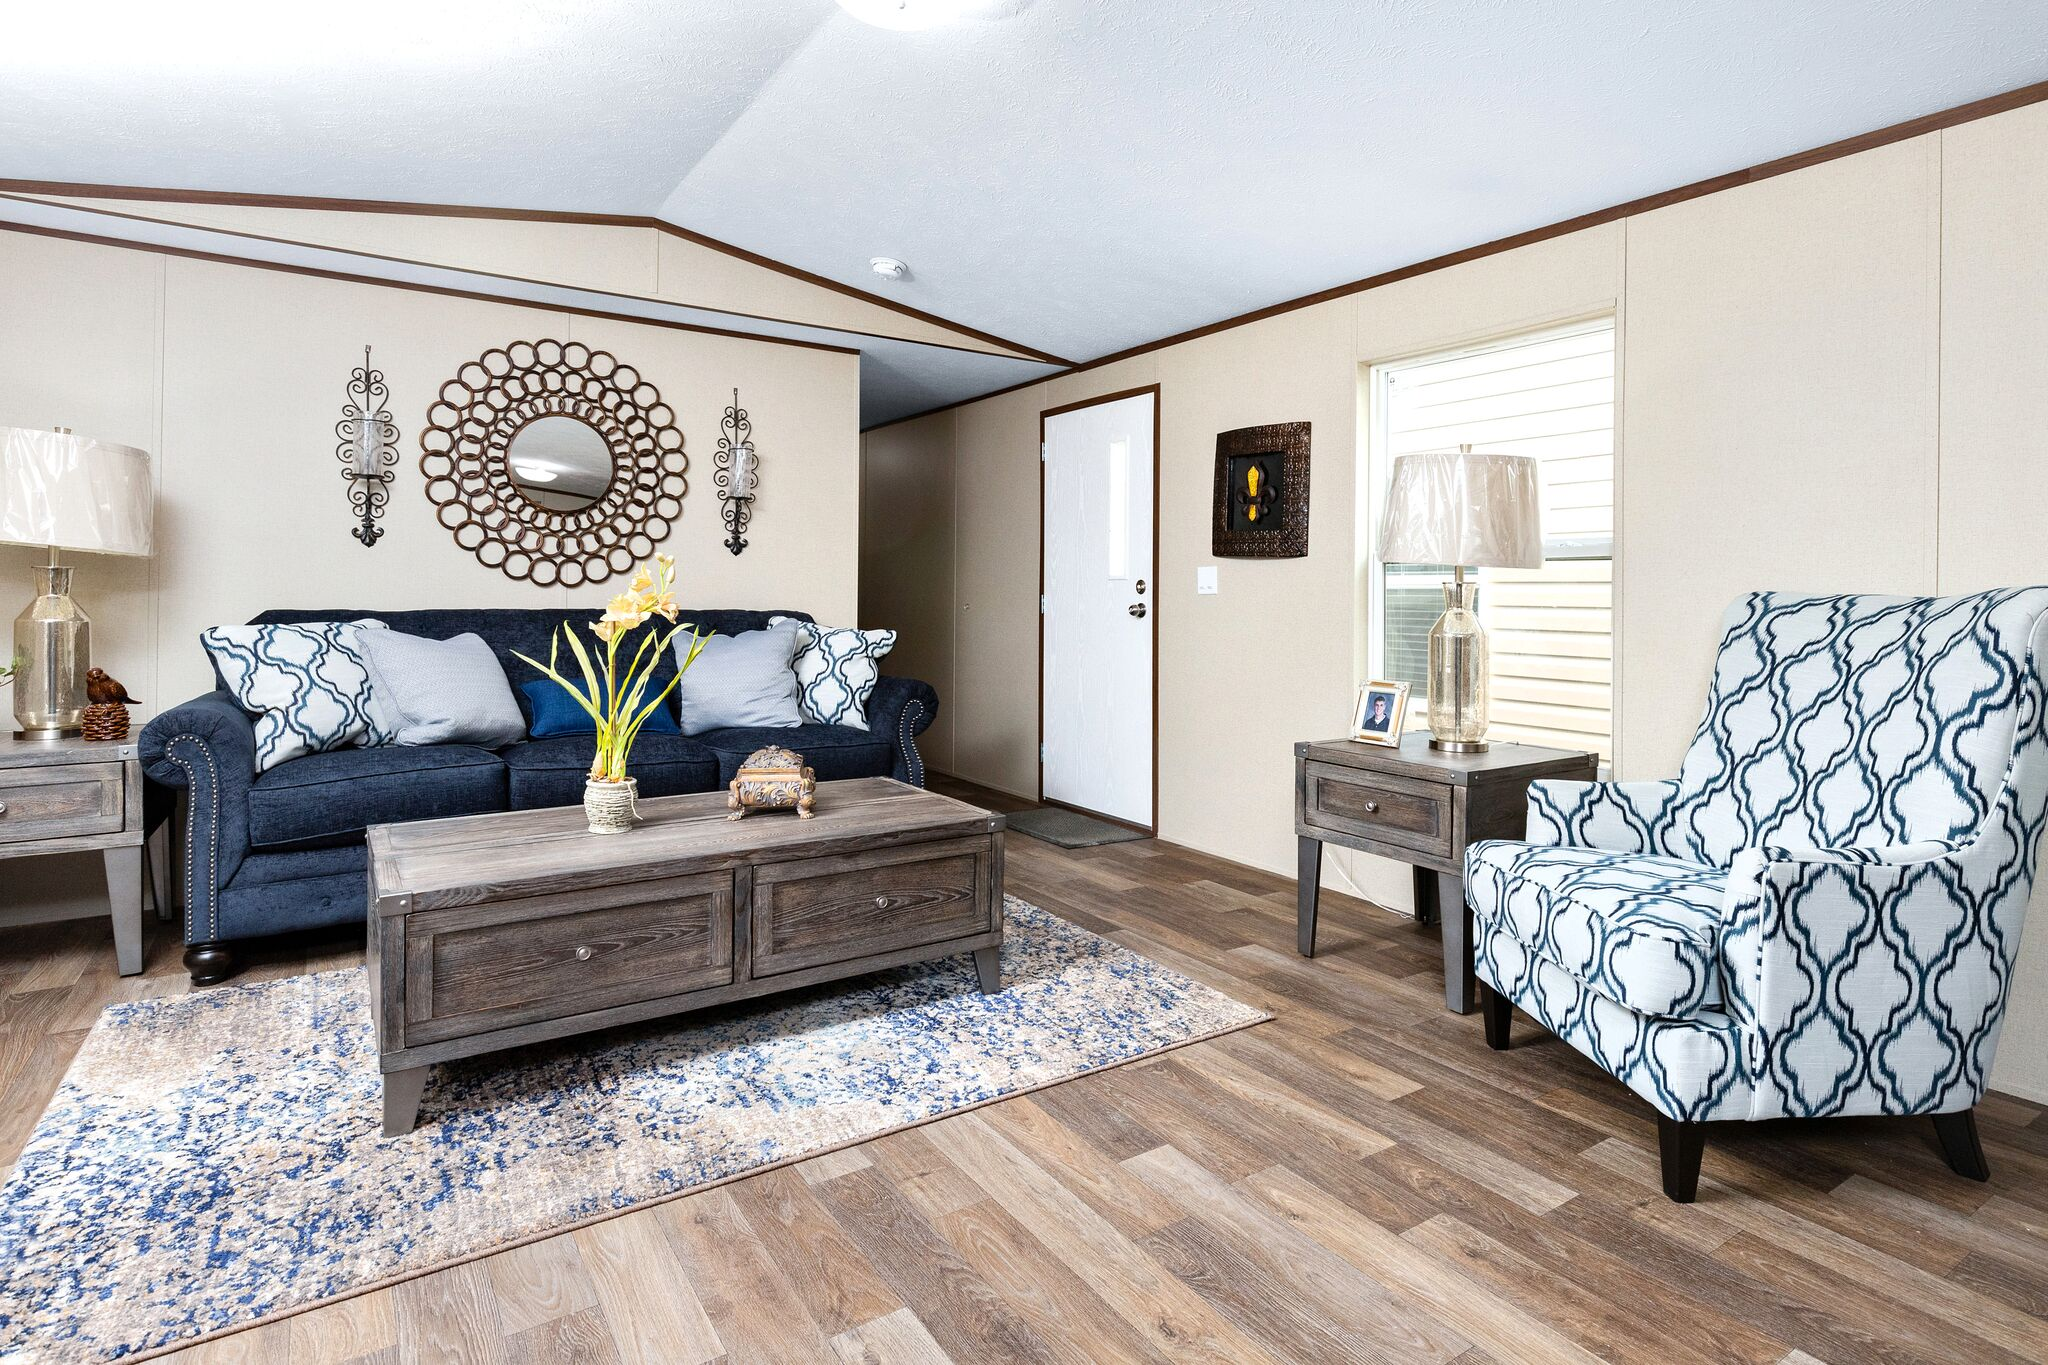 Greg Tilley S Bossier Mobile Homes Inc, How To Decorate A Living Room In Single Wide Mobile Home